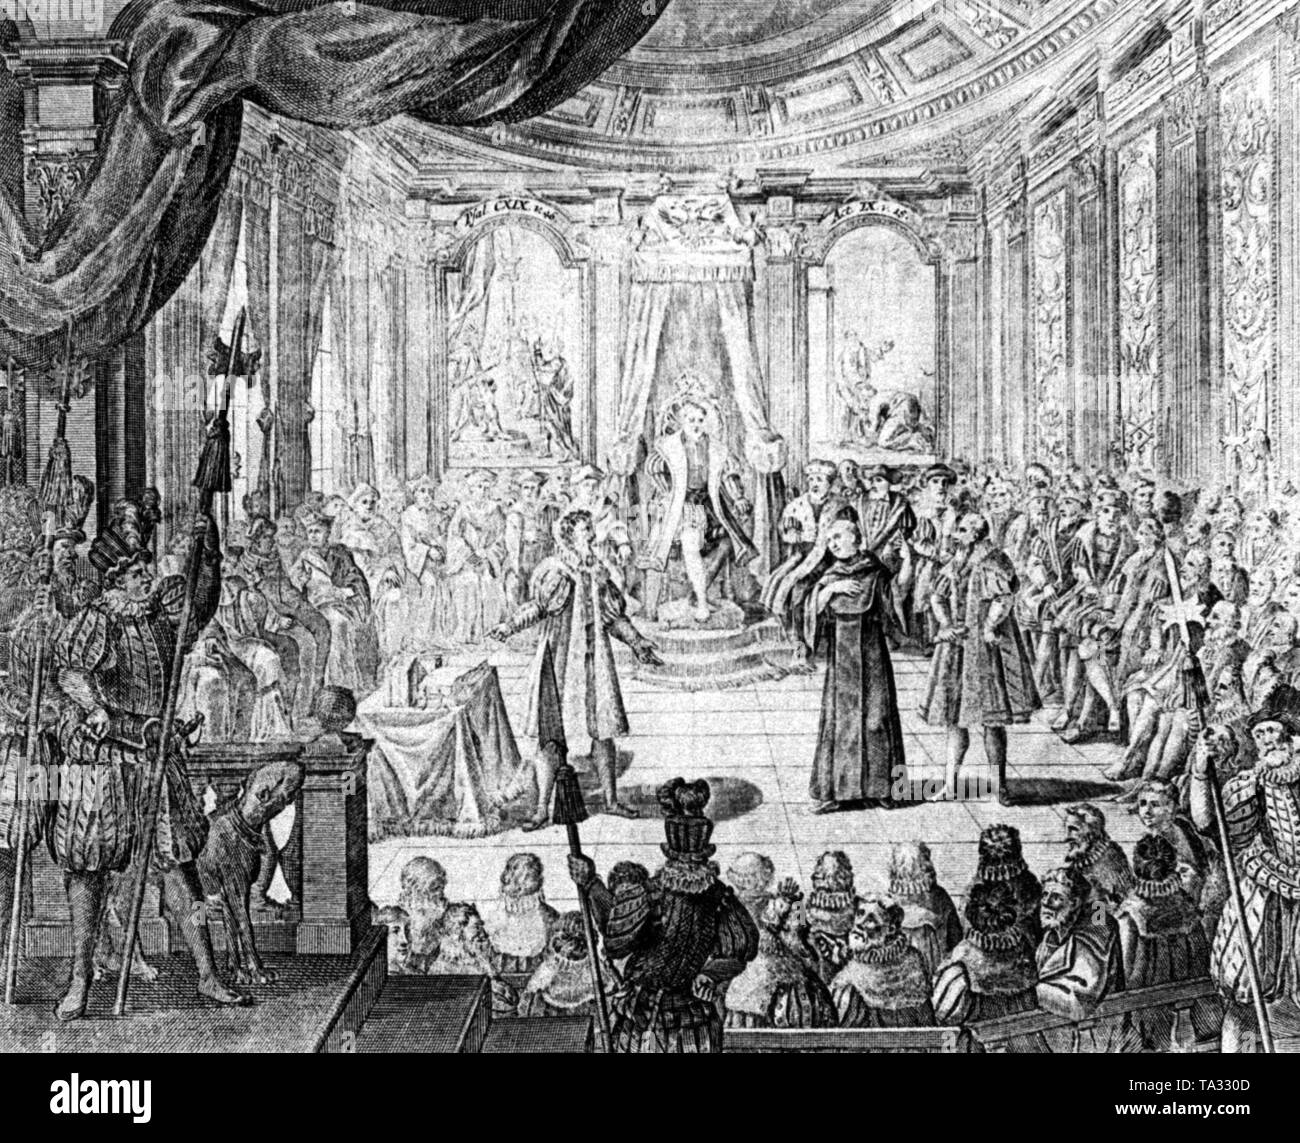 This engraving by Karl Remshart appeared in 1721 for a peace festival, in memory of the Peace of Westphalia of 1648. In 1730 Johann Michael Roth published an anthology of the peace paintings that includes this engraving as well. The engraving shows Luther at the Diet of Worms during a defense speech of his doctrine before Emperor Charles V, who sits in the middle under the canopy, spiritual dignitaries (l.) and secular princes (r.). - Stock Image